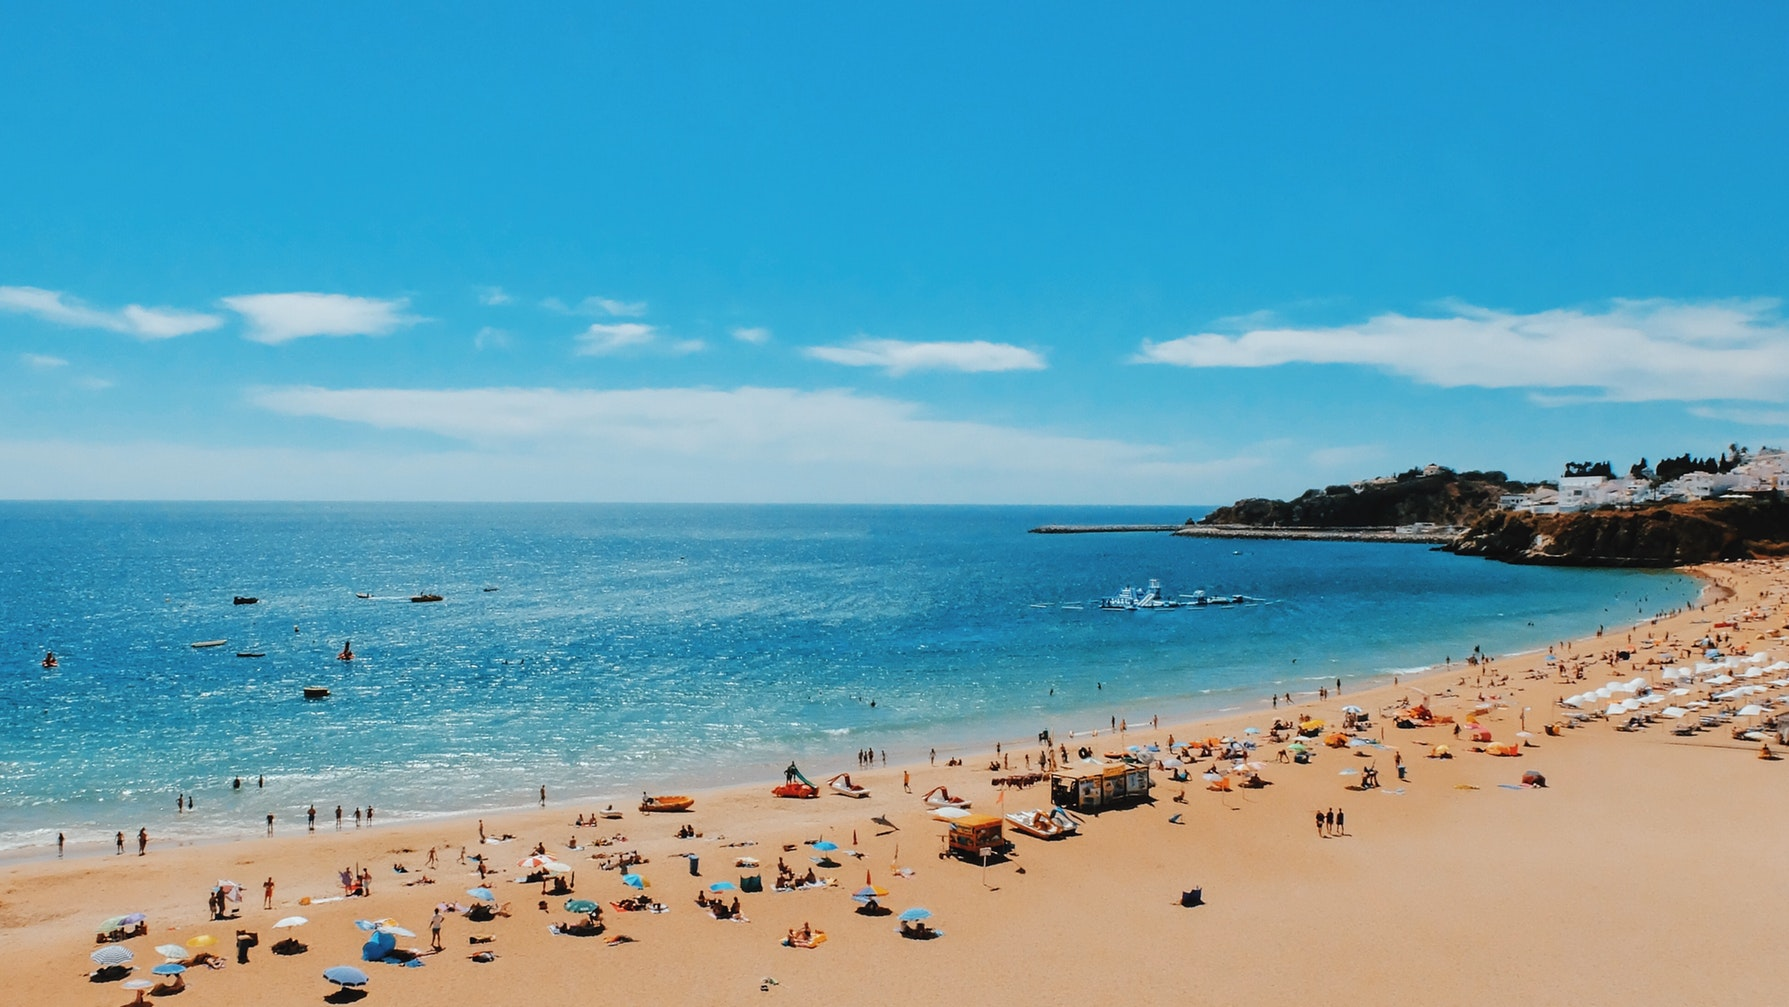 Albufeira beaches & seafood, what else?